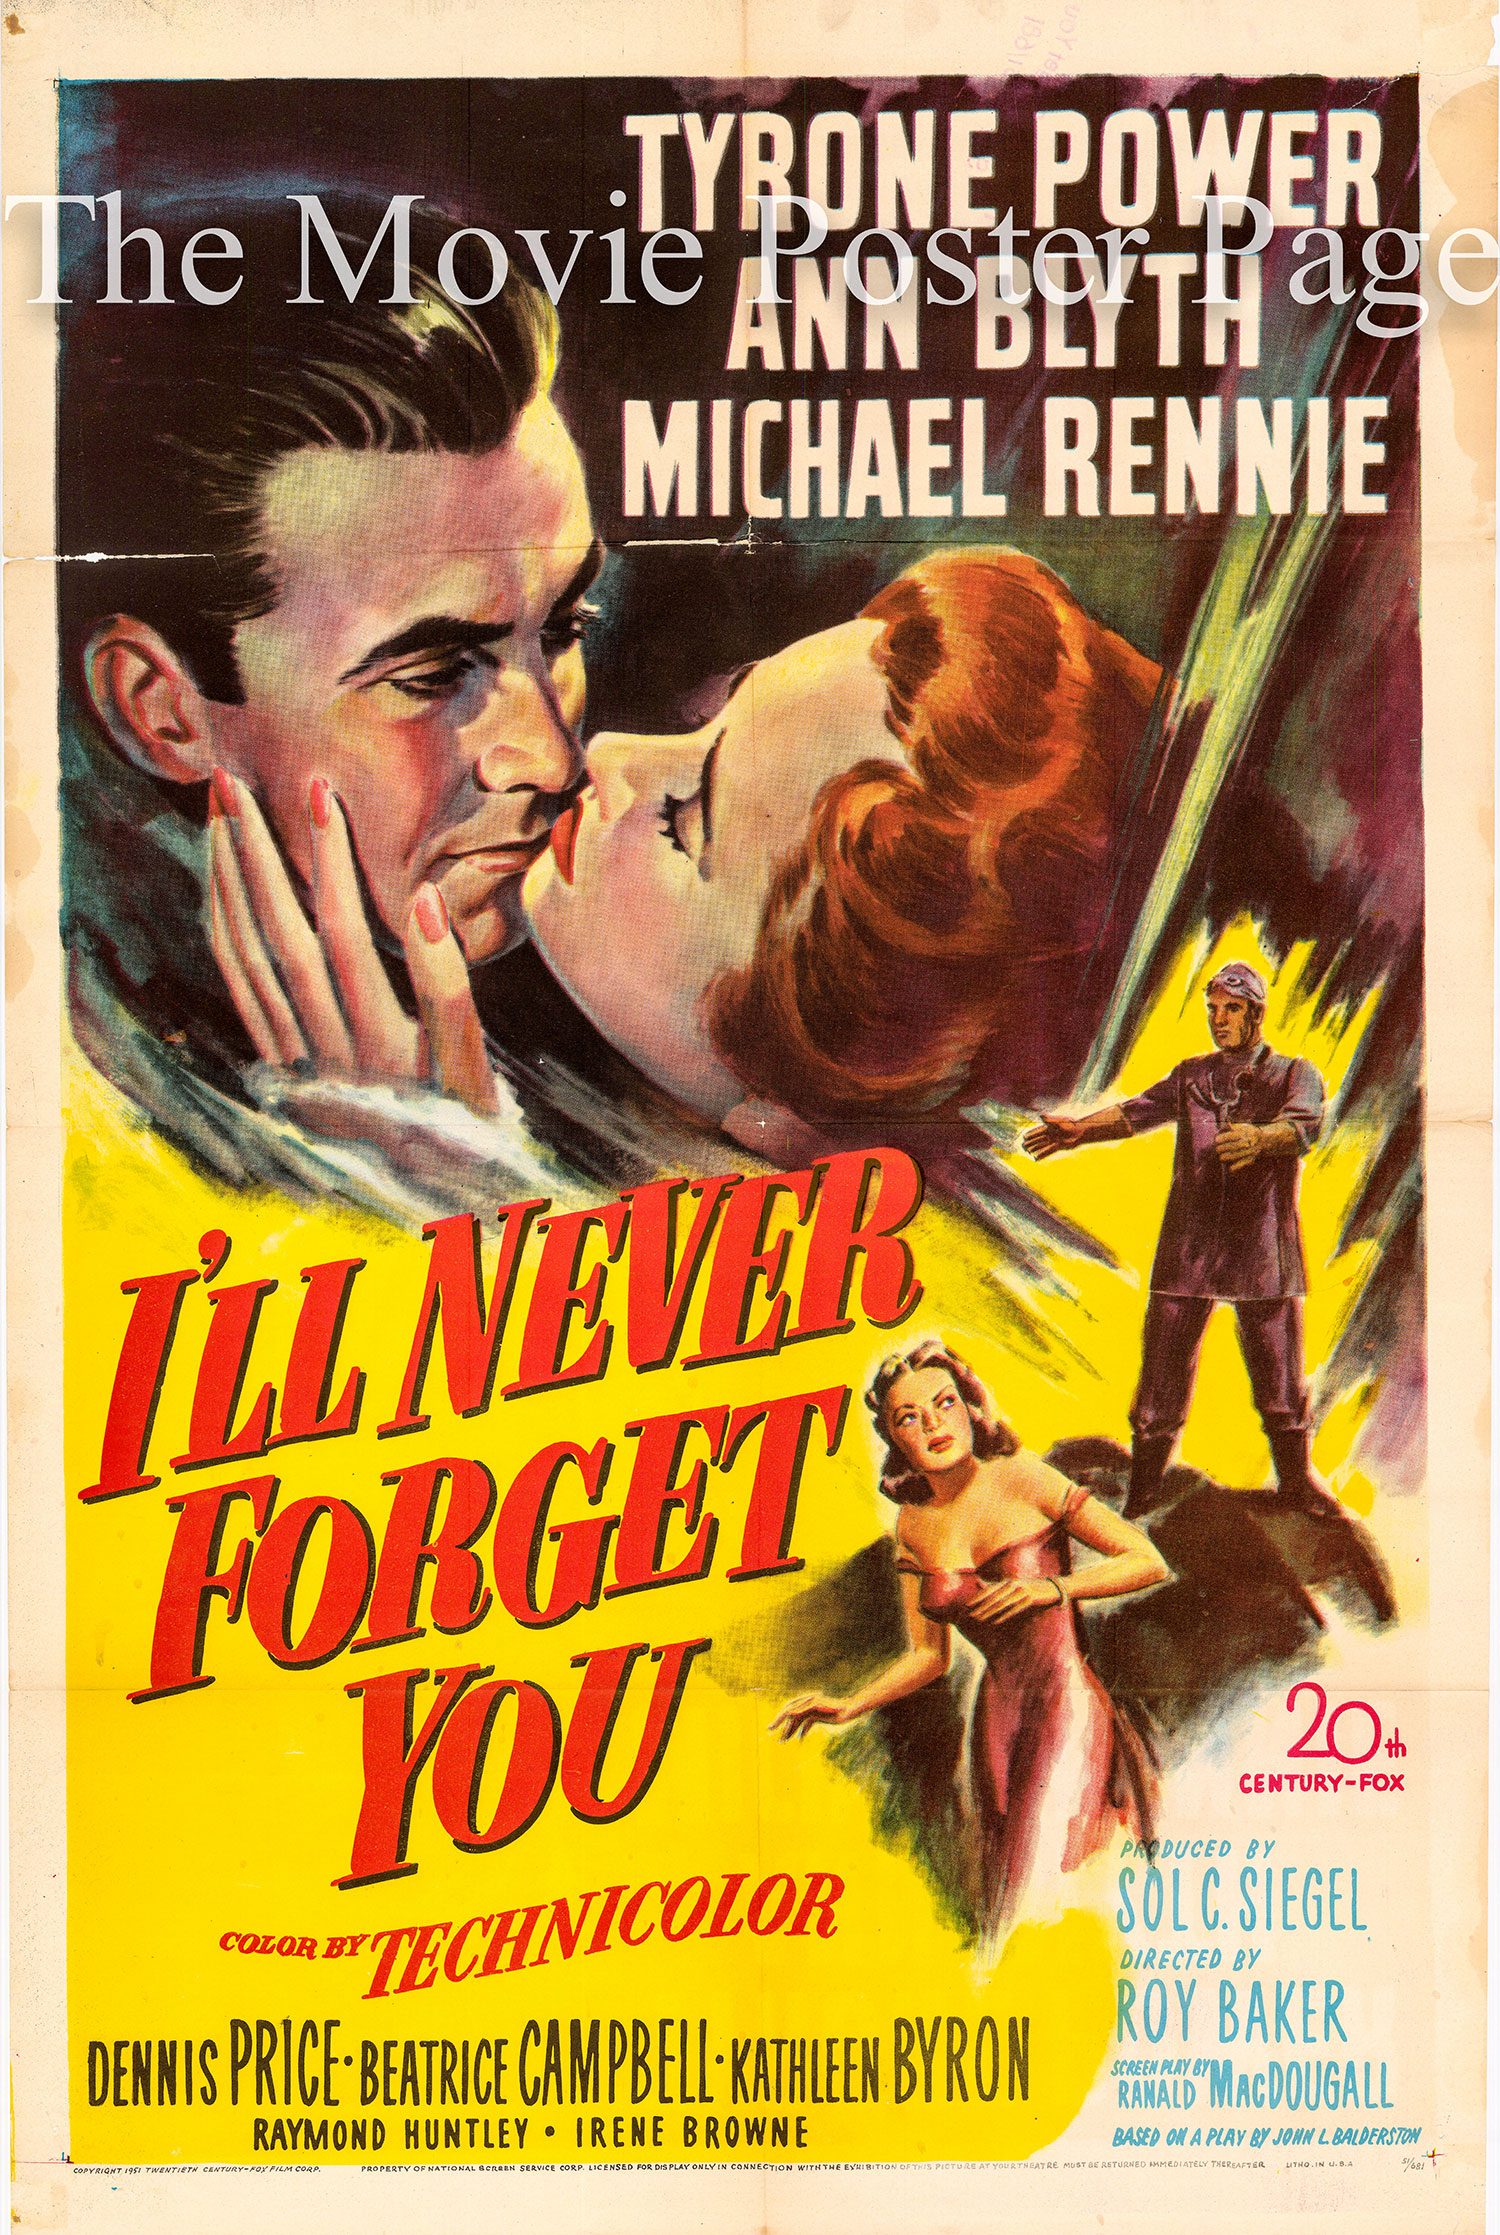 Pictured is a US one-sheet promotional poster for the 1951 Roy Ward Baker film I'll Never Forget You starring Tyrone Power and Ann Blyth.